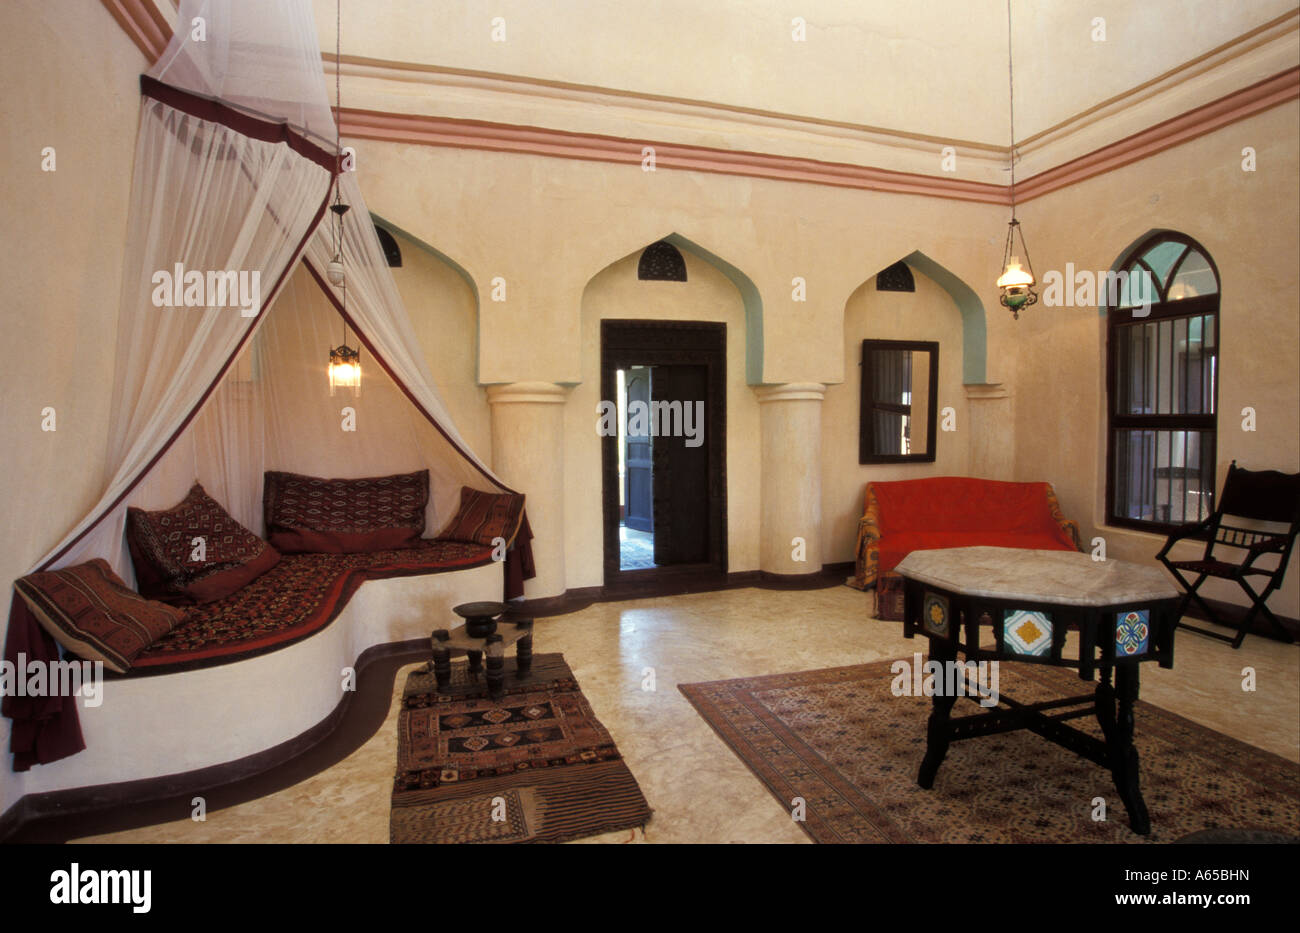 Traditional Swahili Room Interior With Antique Furniture